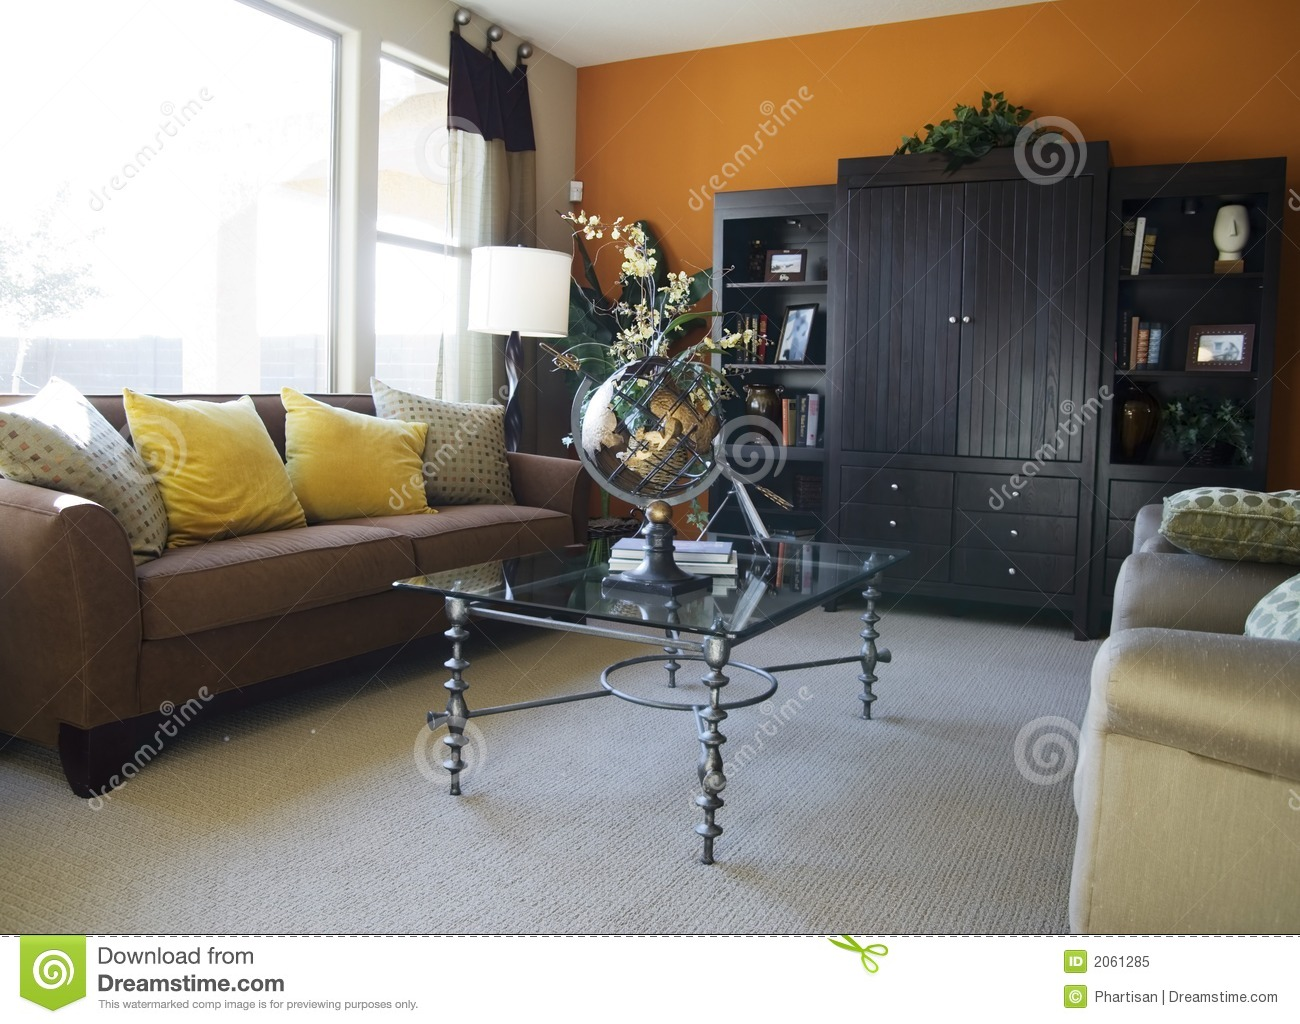 Model home interior design royalty free stock photo for Model home interior design